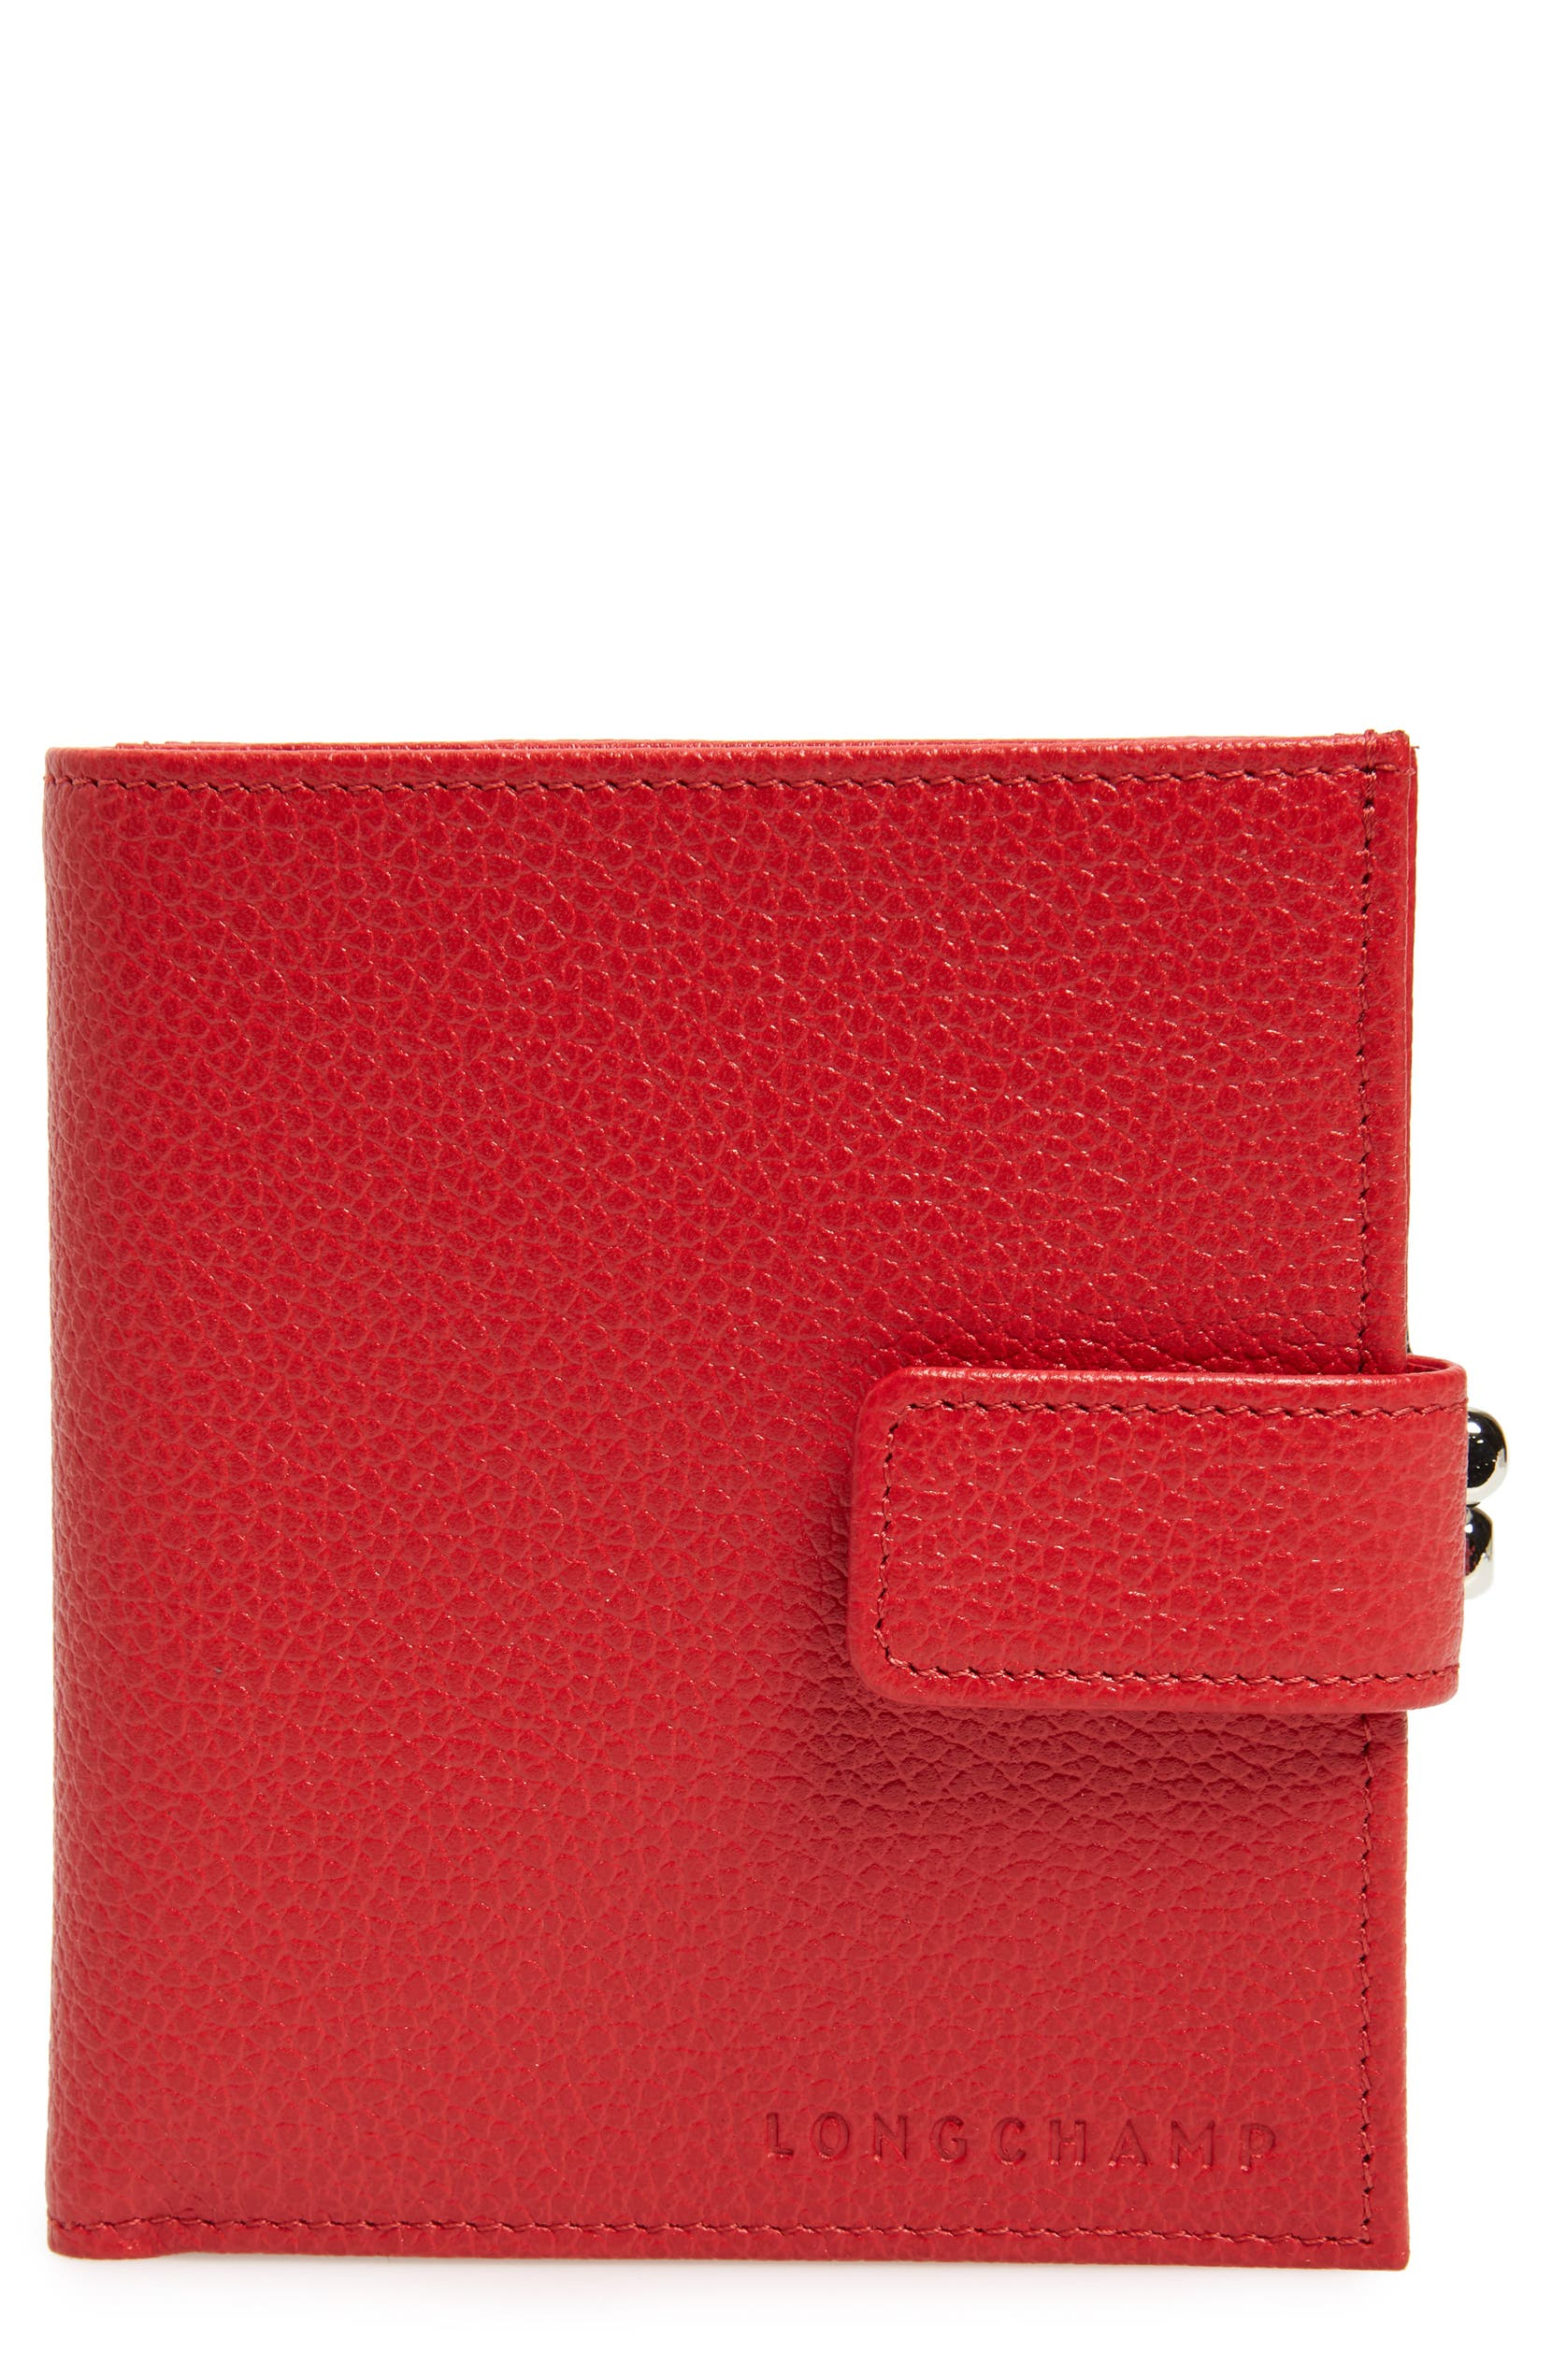 3f4d2feebcc Longchamp 'Le Foulonne' Pebbled Leather Wallet | Nordstrom